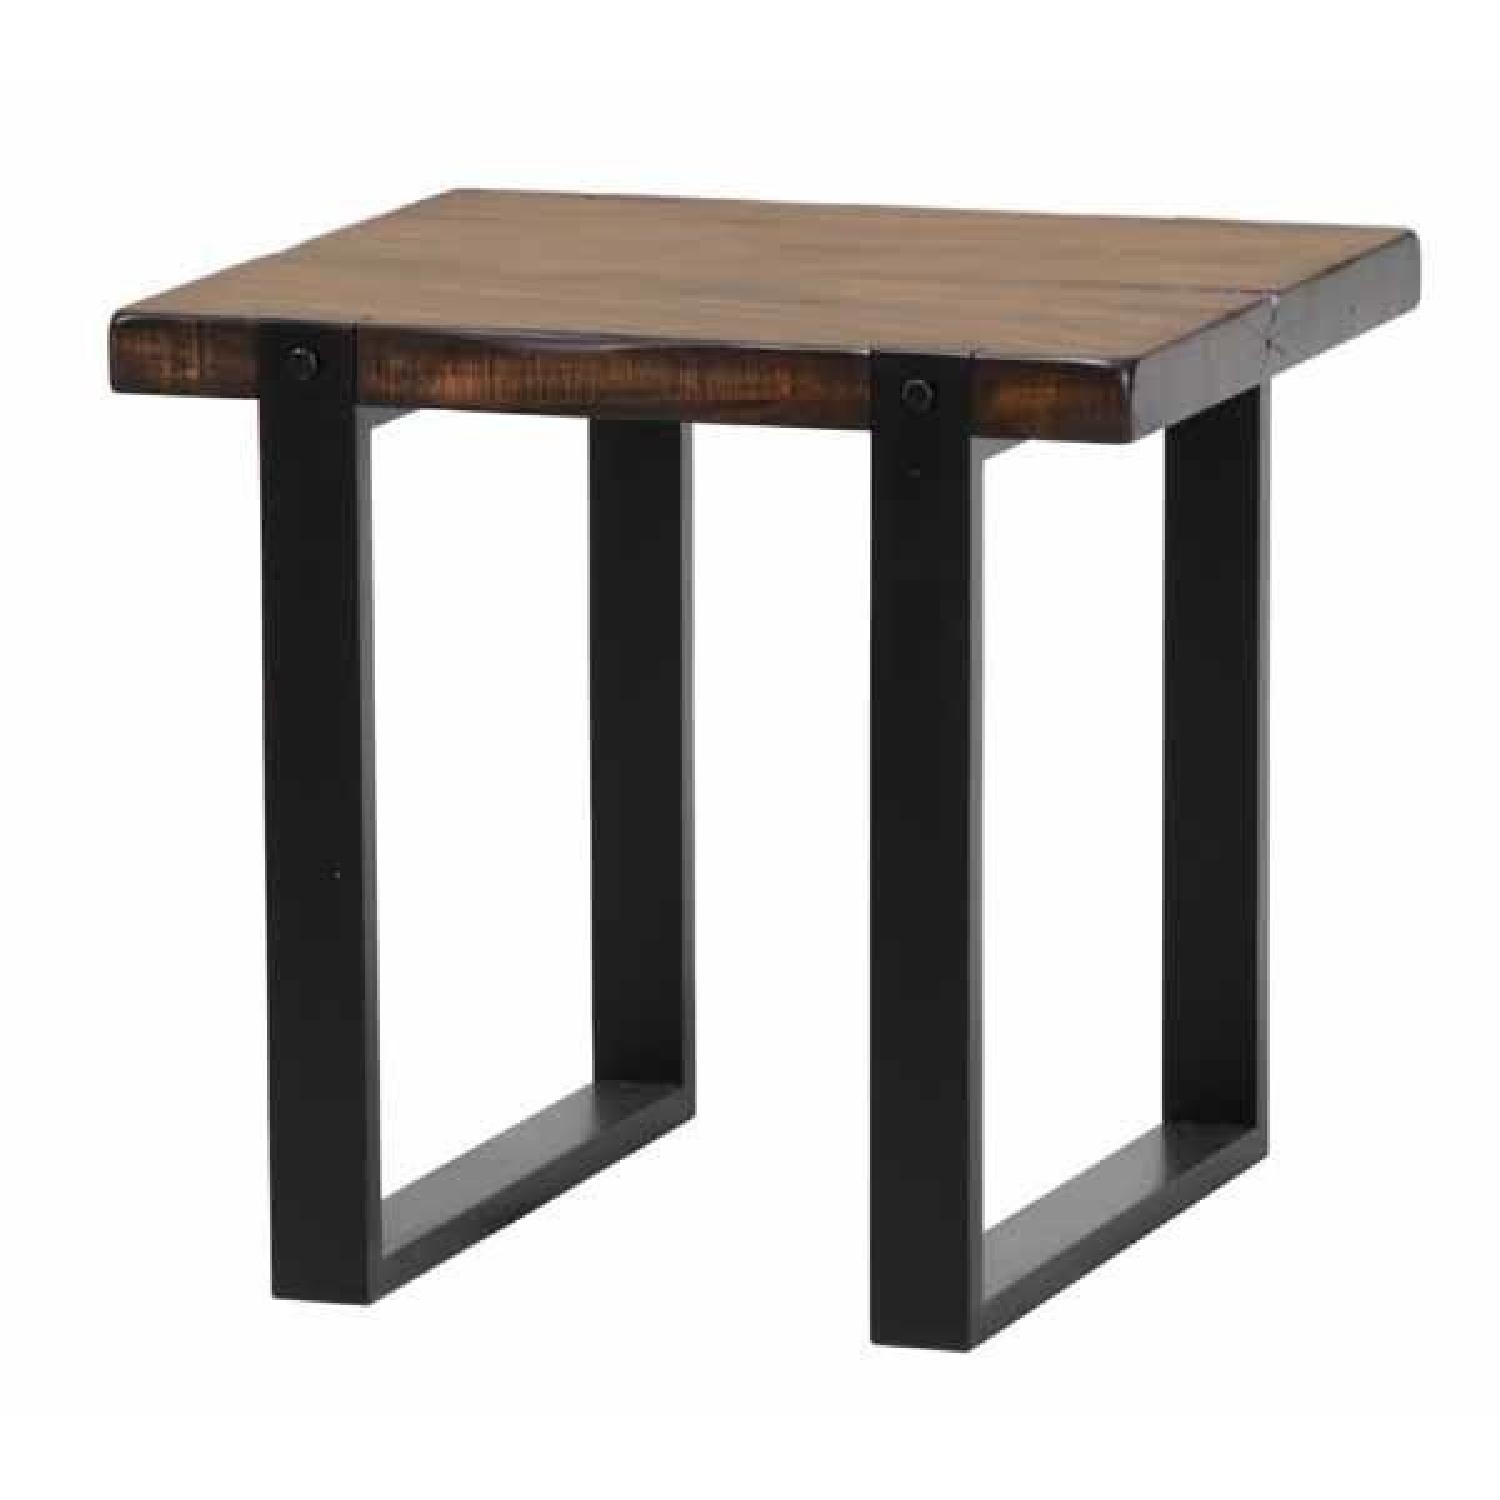 Urban Style End Table w/ Mahogany Solids & Finished in Two-Tone Vintage Brown & Black